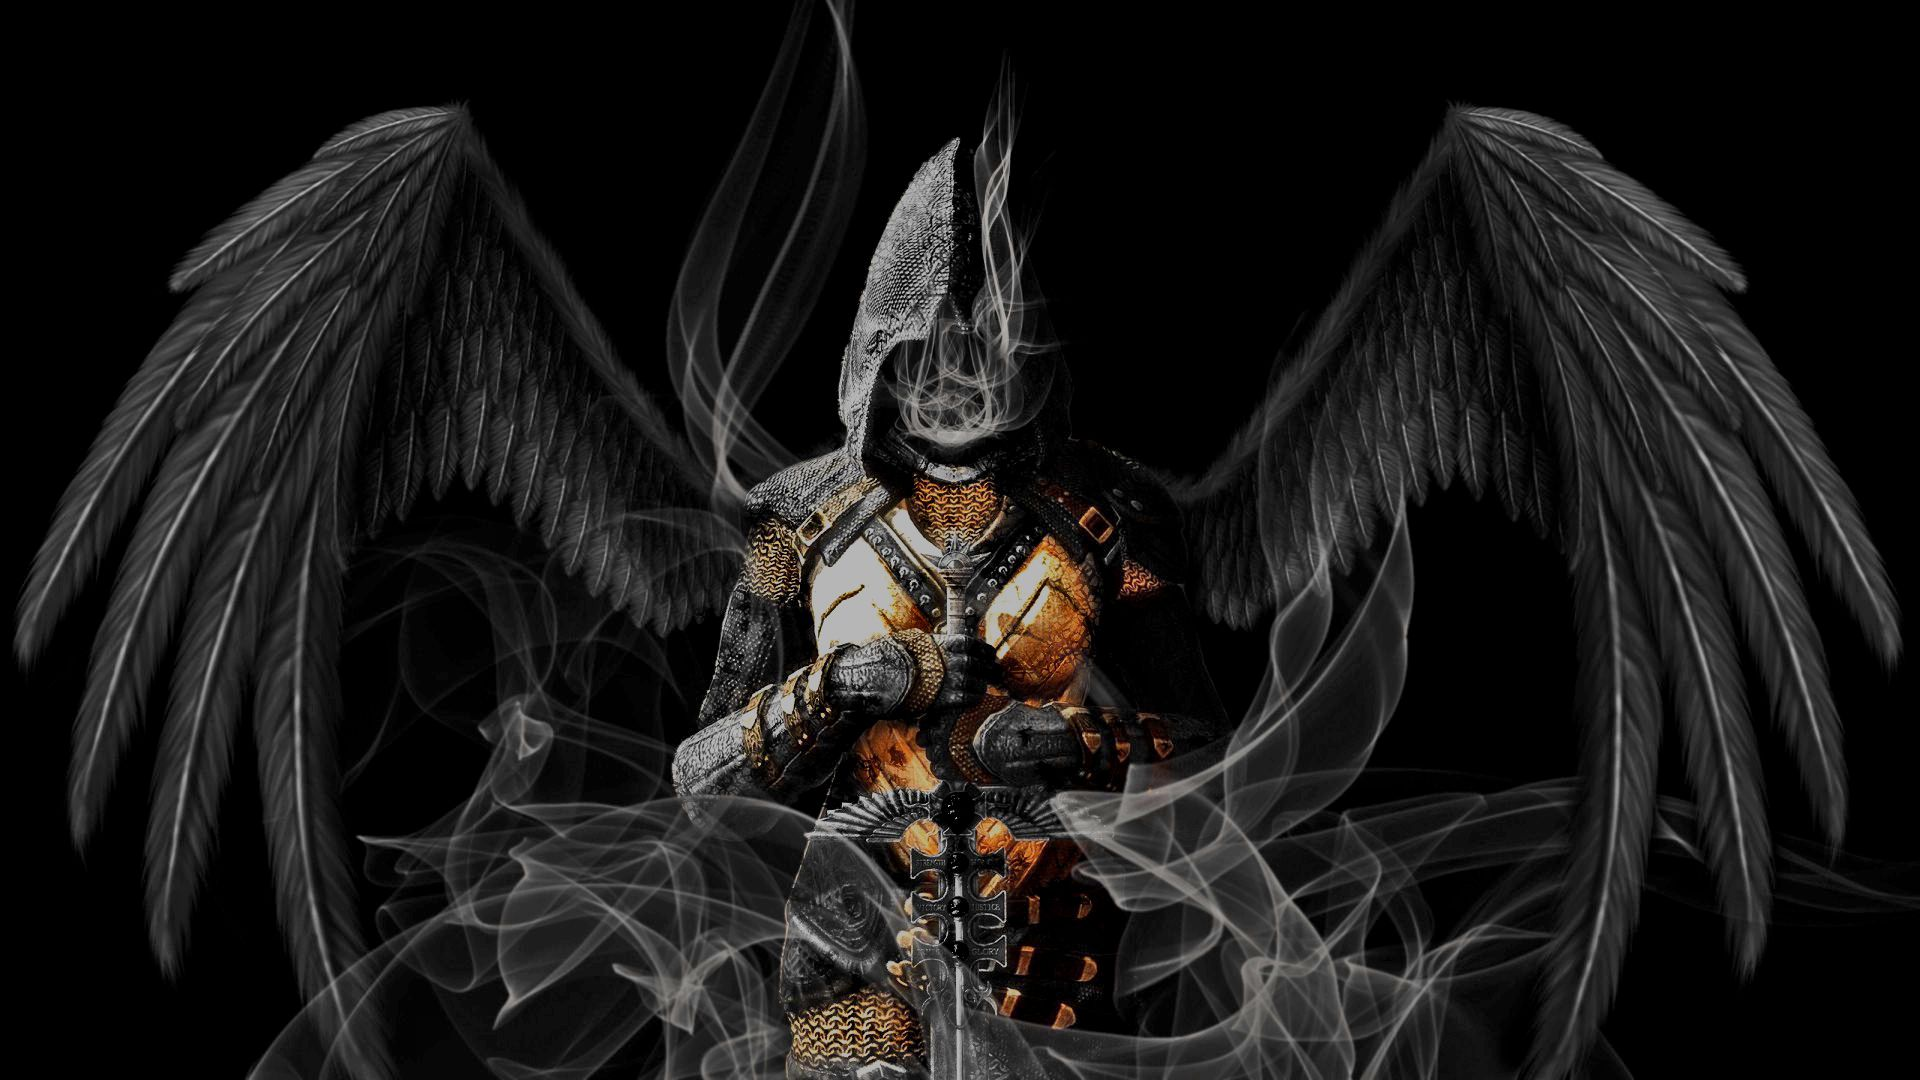 Dark+Angel+Warrior+Wallpaper+Background Angels and